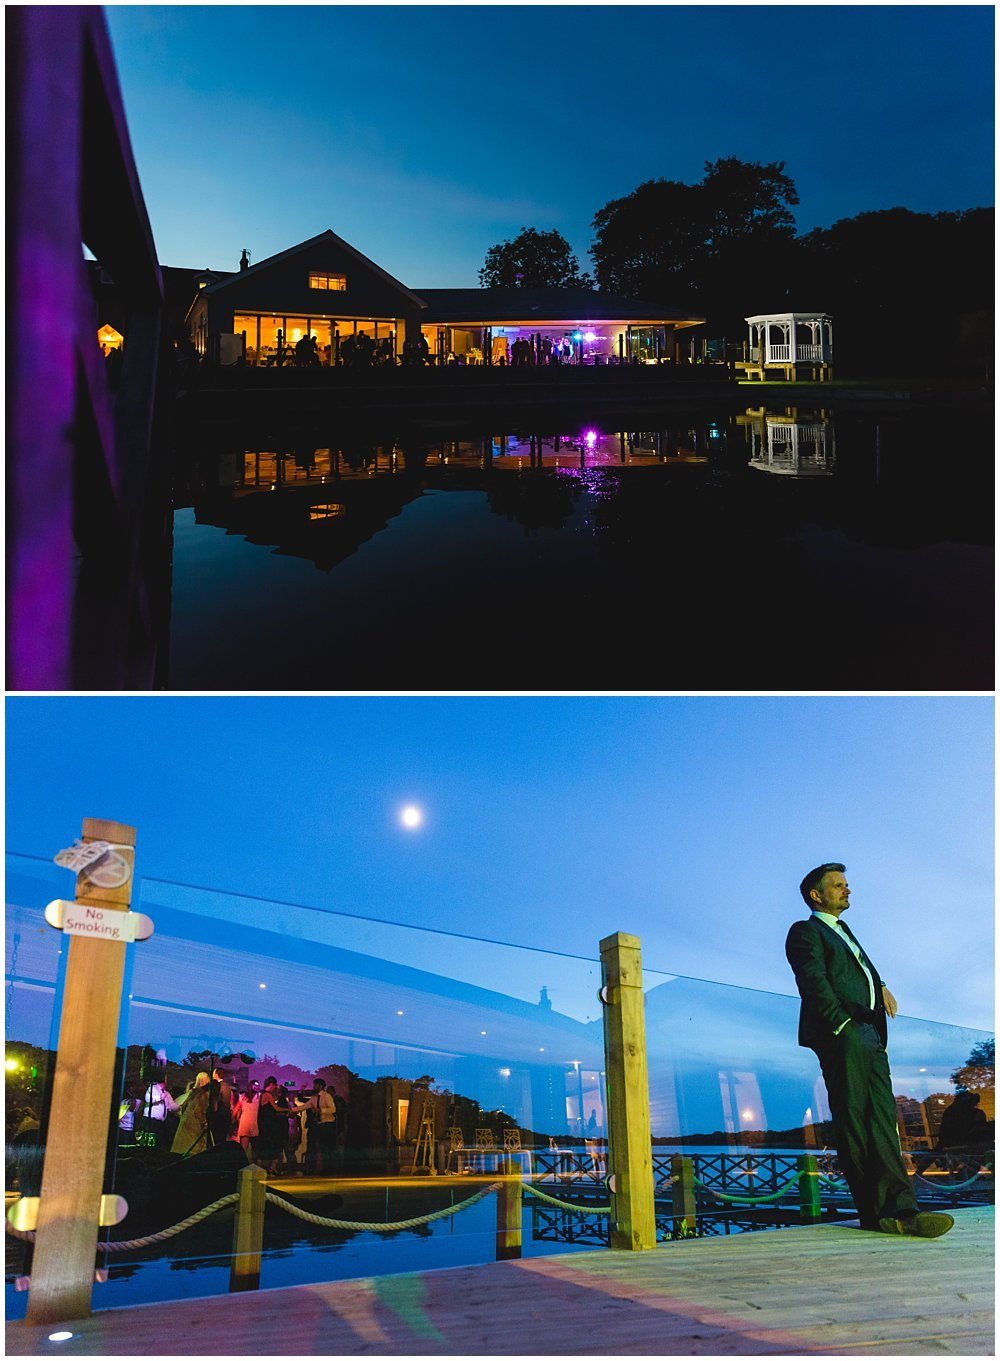 AMY AND DUNCAN NORWICH CATHEDRAL AND THE BOATHOUSE WEDDING - NORWICH AND NORFOLK WEDDING PHOTOGRAPHER 68